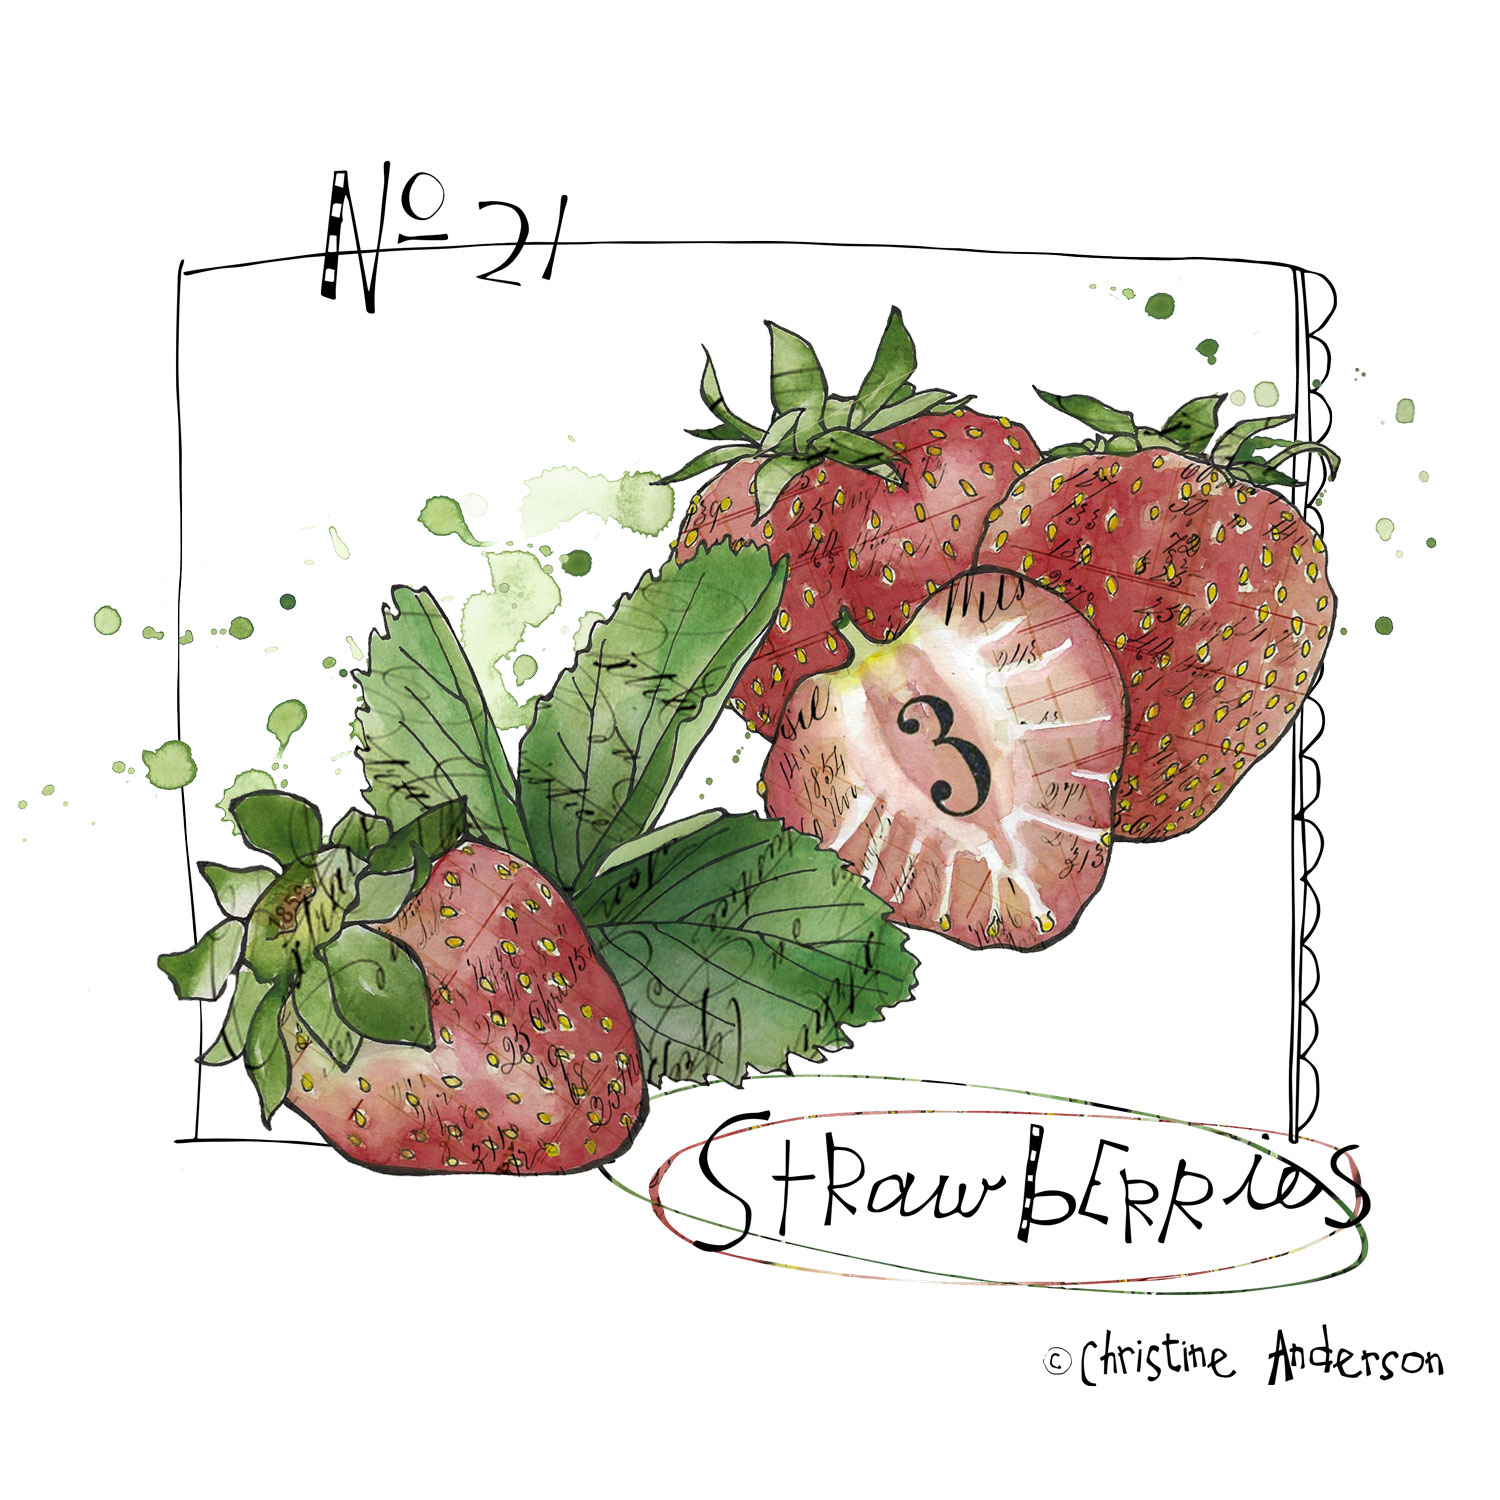 strawberries-day-21.jpg